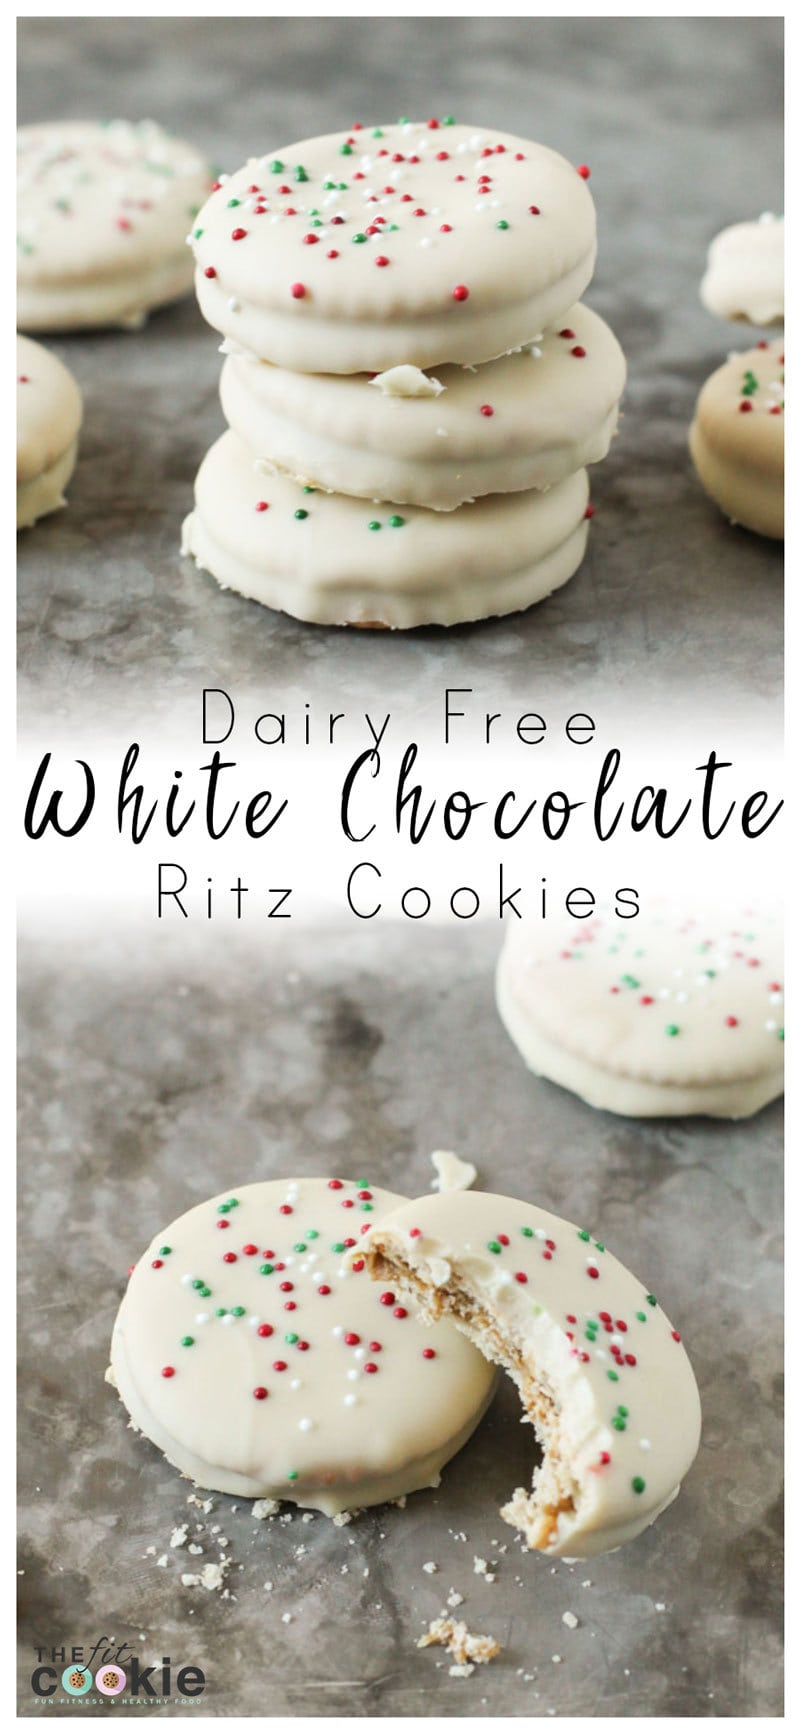 image collage of dairy free white chocolate ritz cookies on a baking sheet